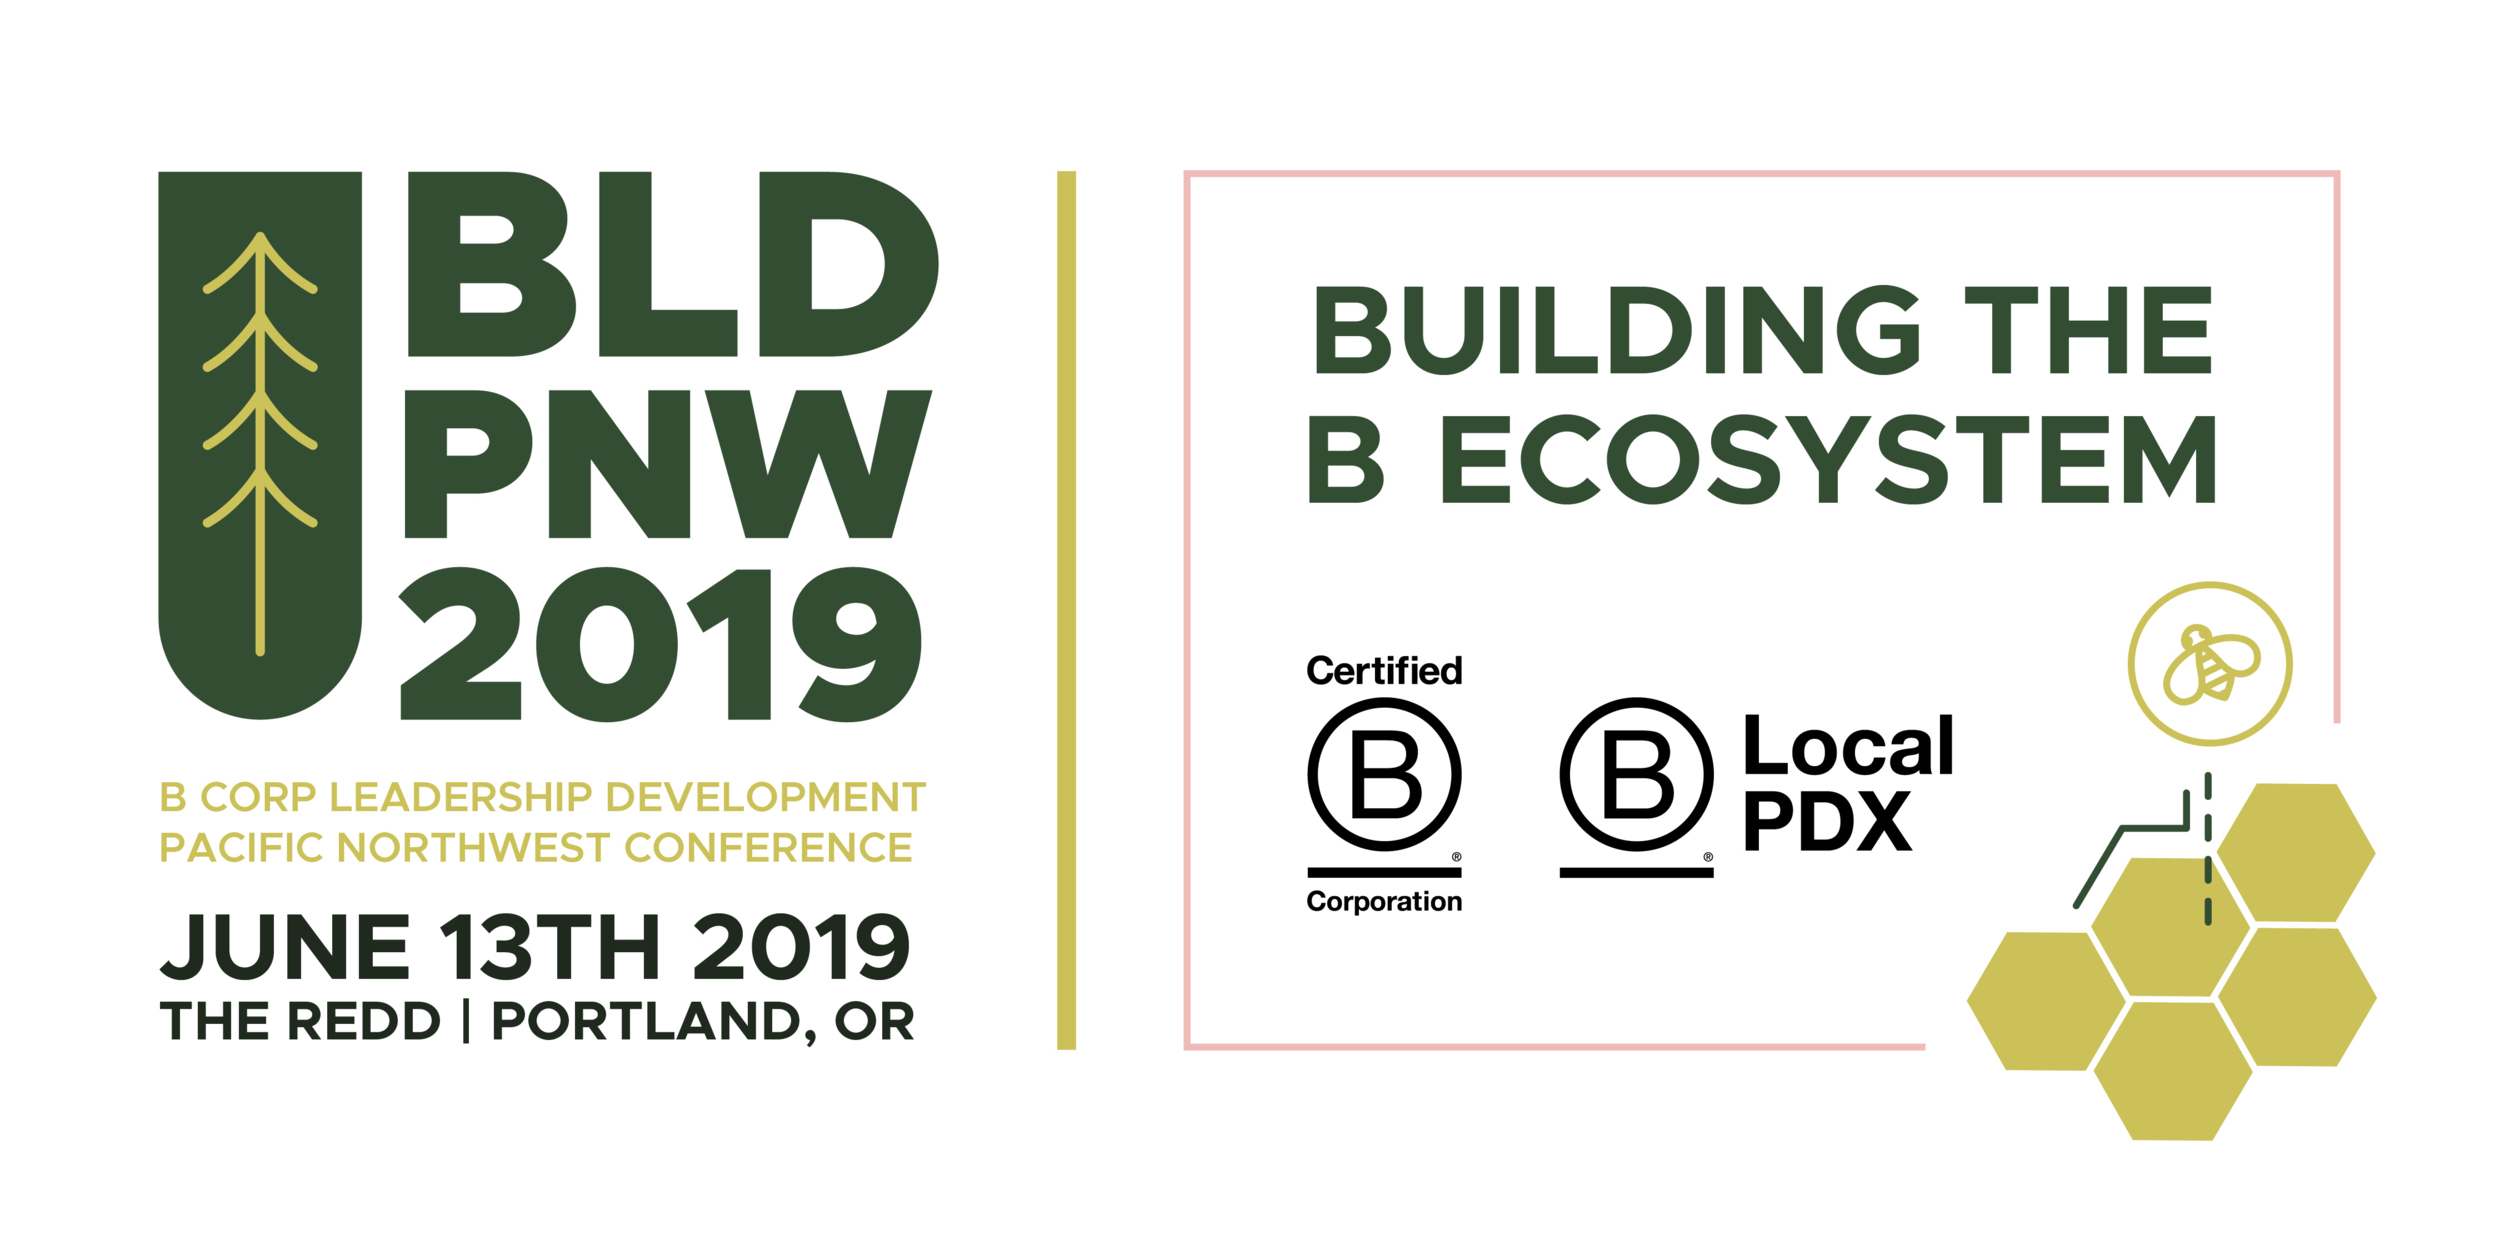 B Corp Leadership Development Conference Pacific Northwest (BLD PNW) 2019 - Building the B Ecosystem. June 13, 2019 at The Redd on Salmon in Portland, Oregon.